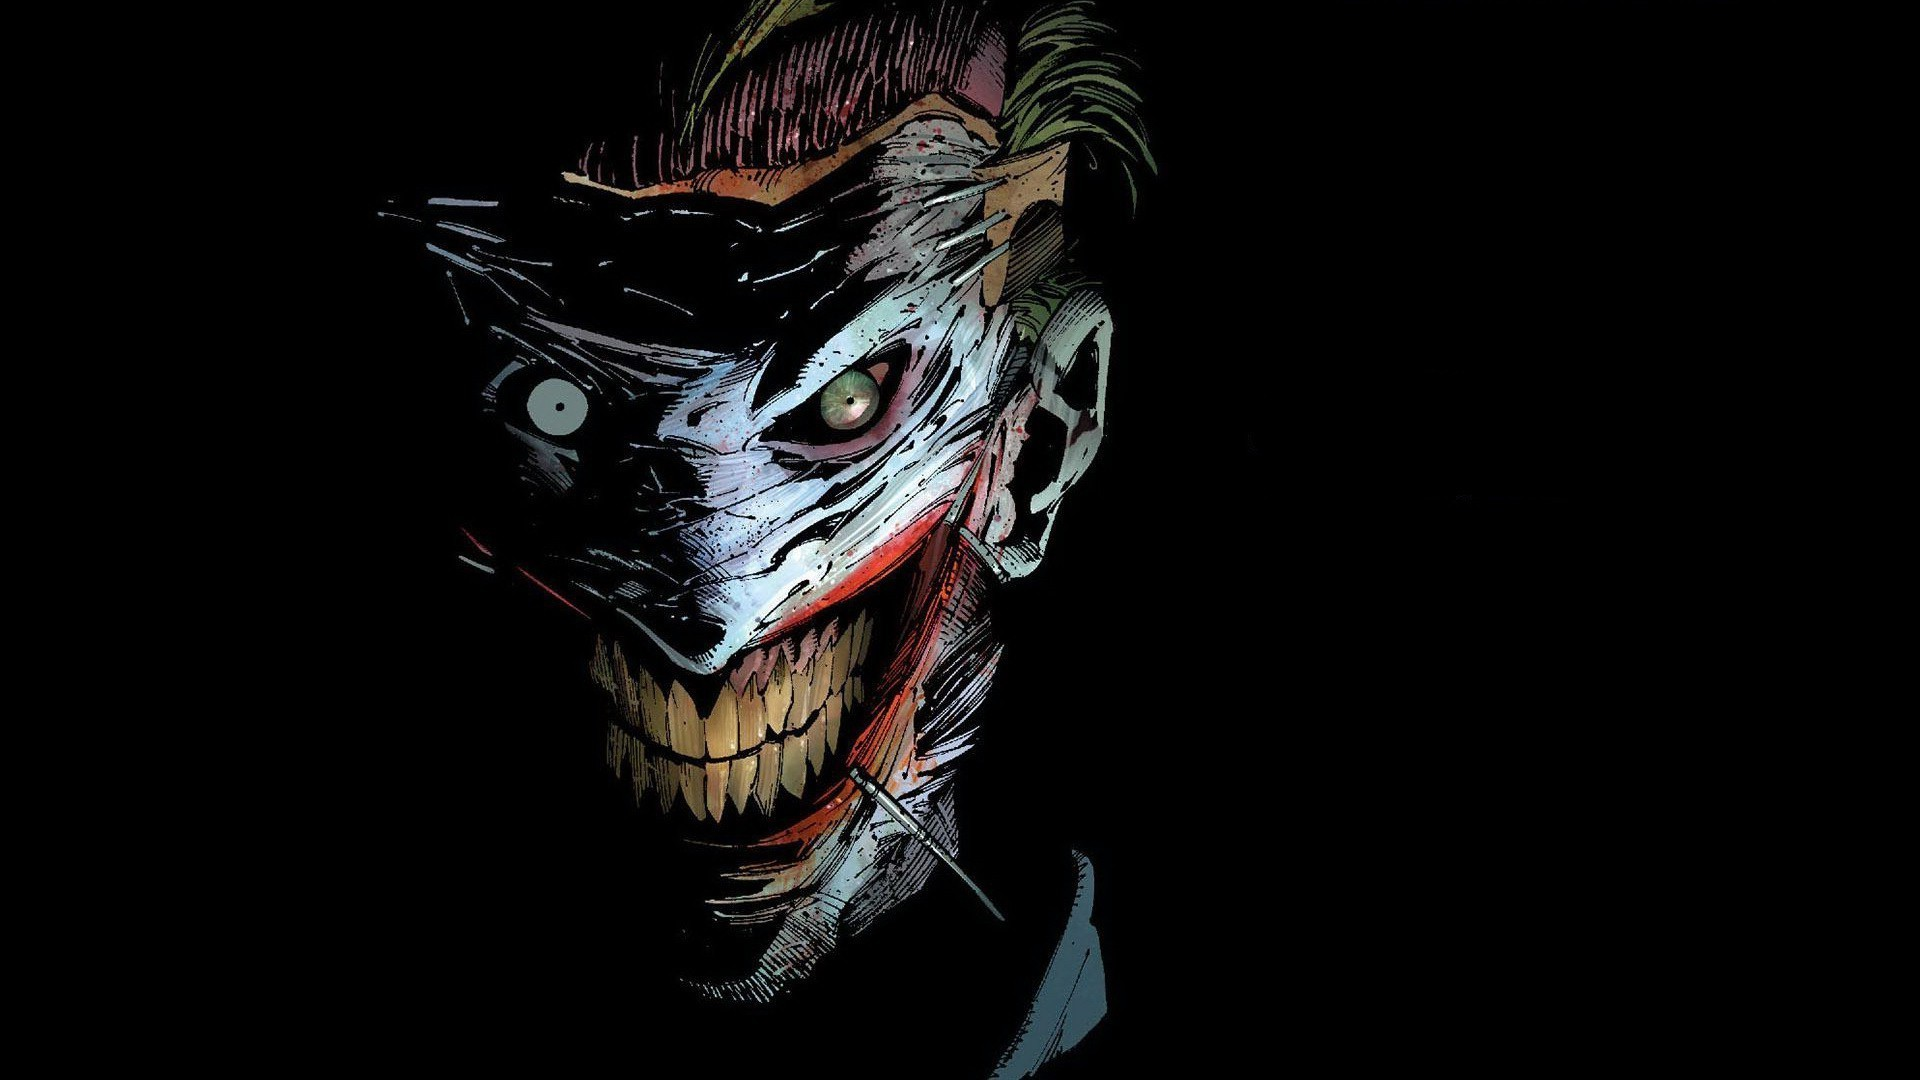 Joker wallpaper hd 1080p 81 immagini for Joker immagini hd